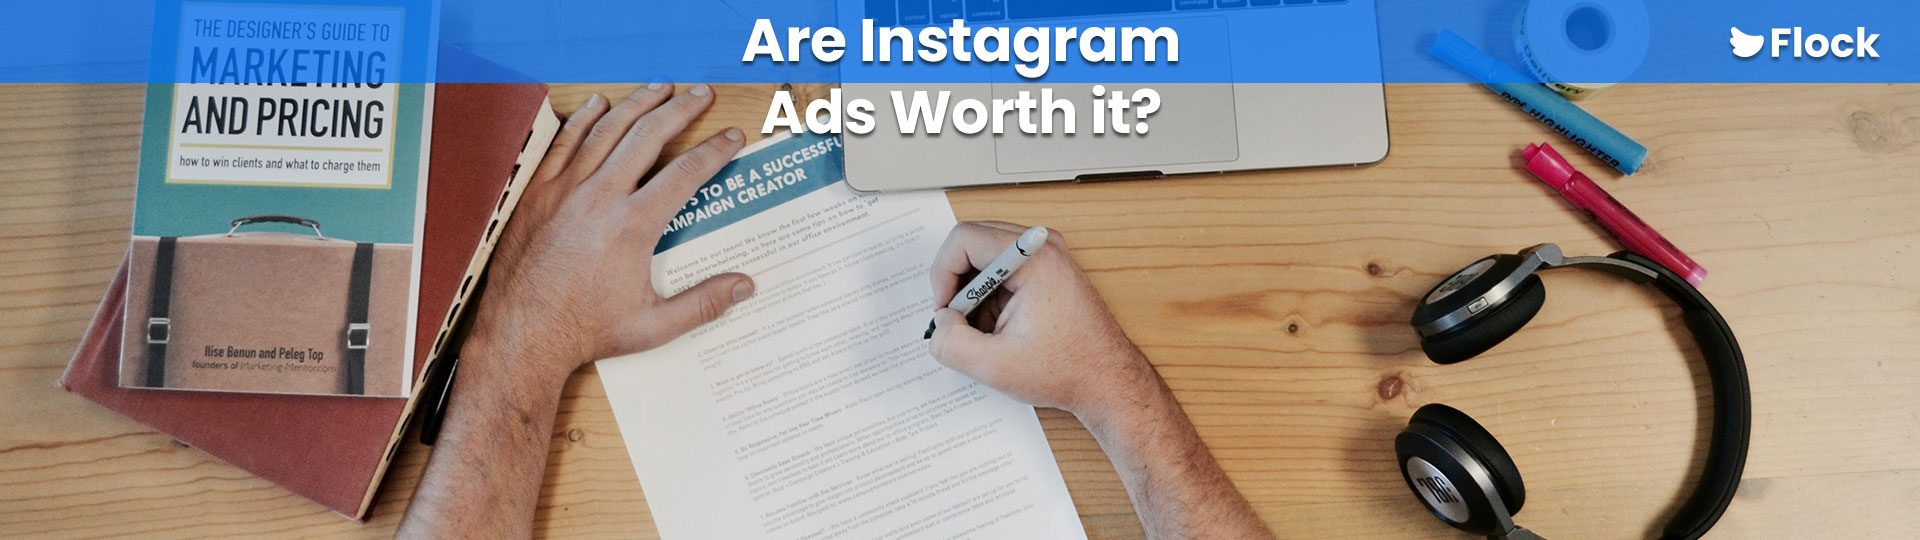 are instagram ads worth it featured image